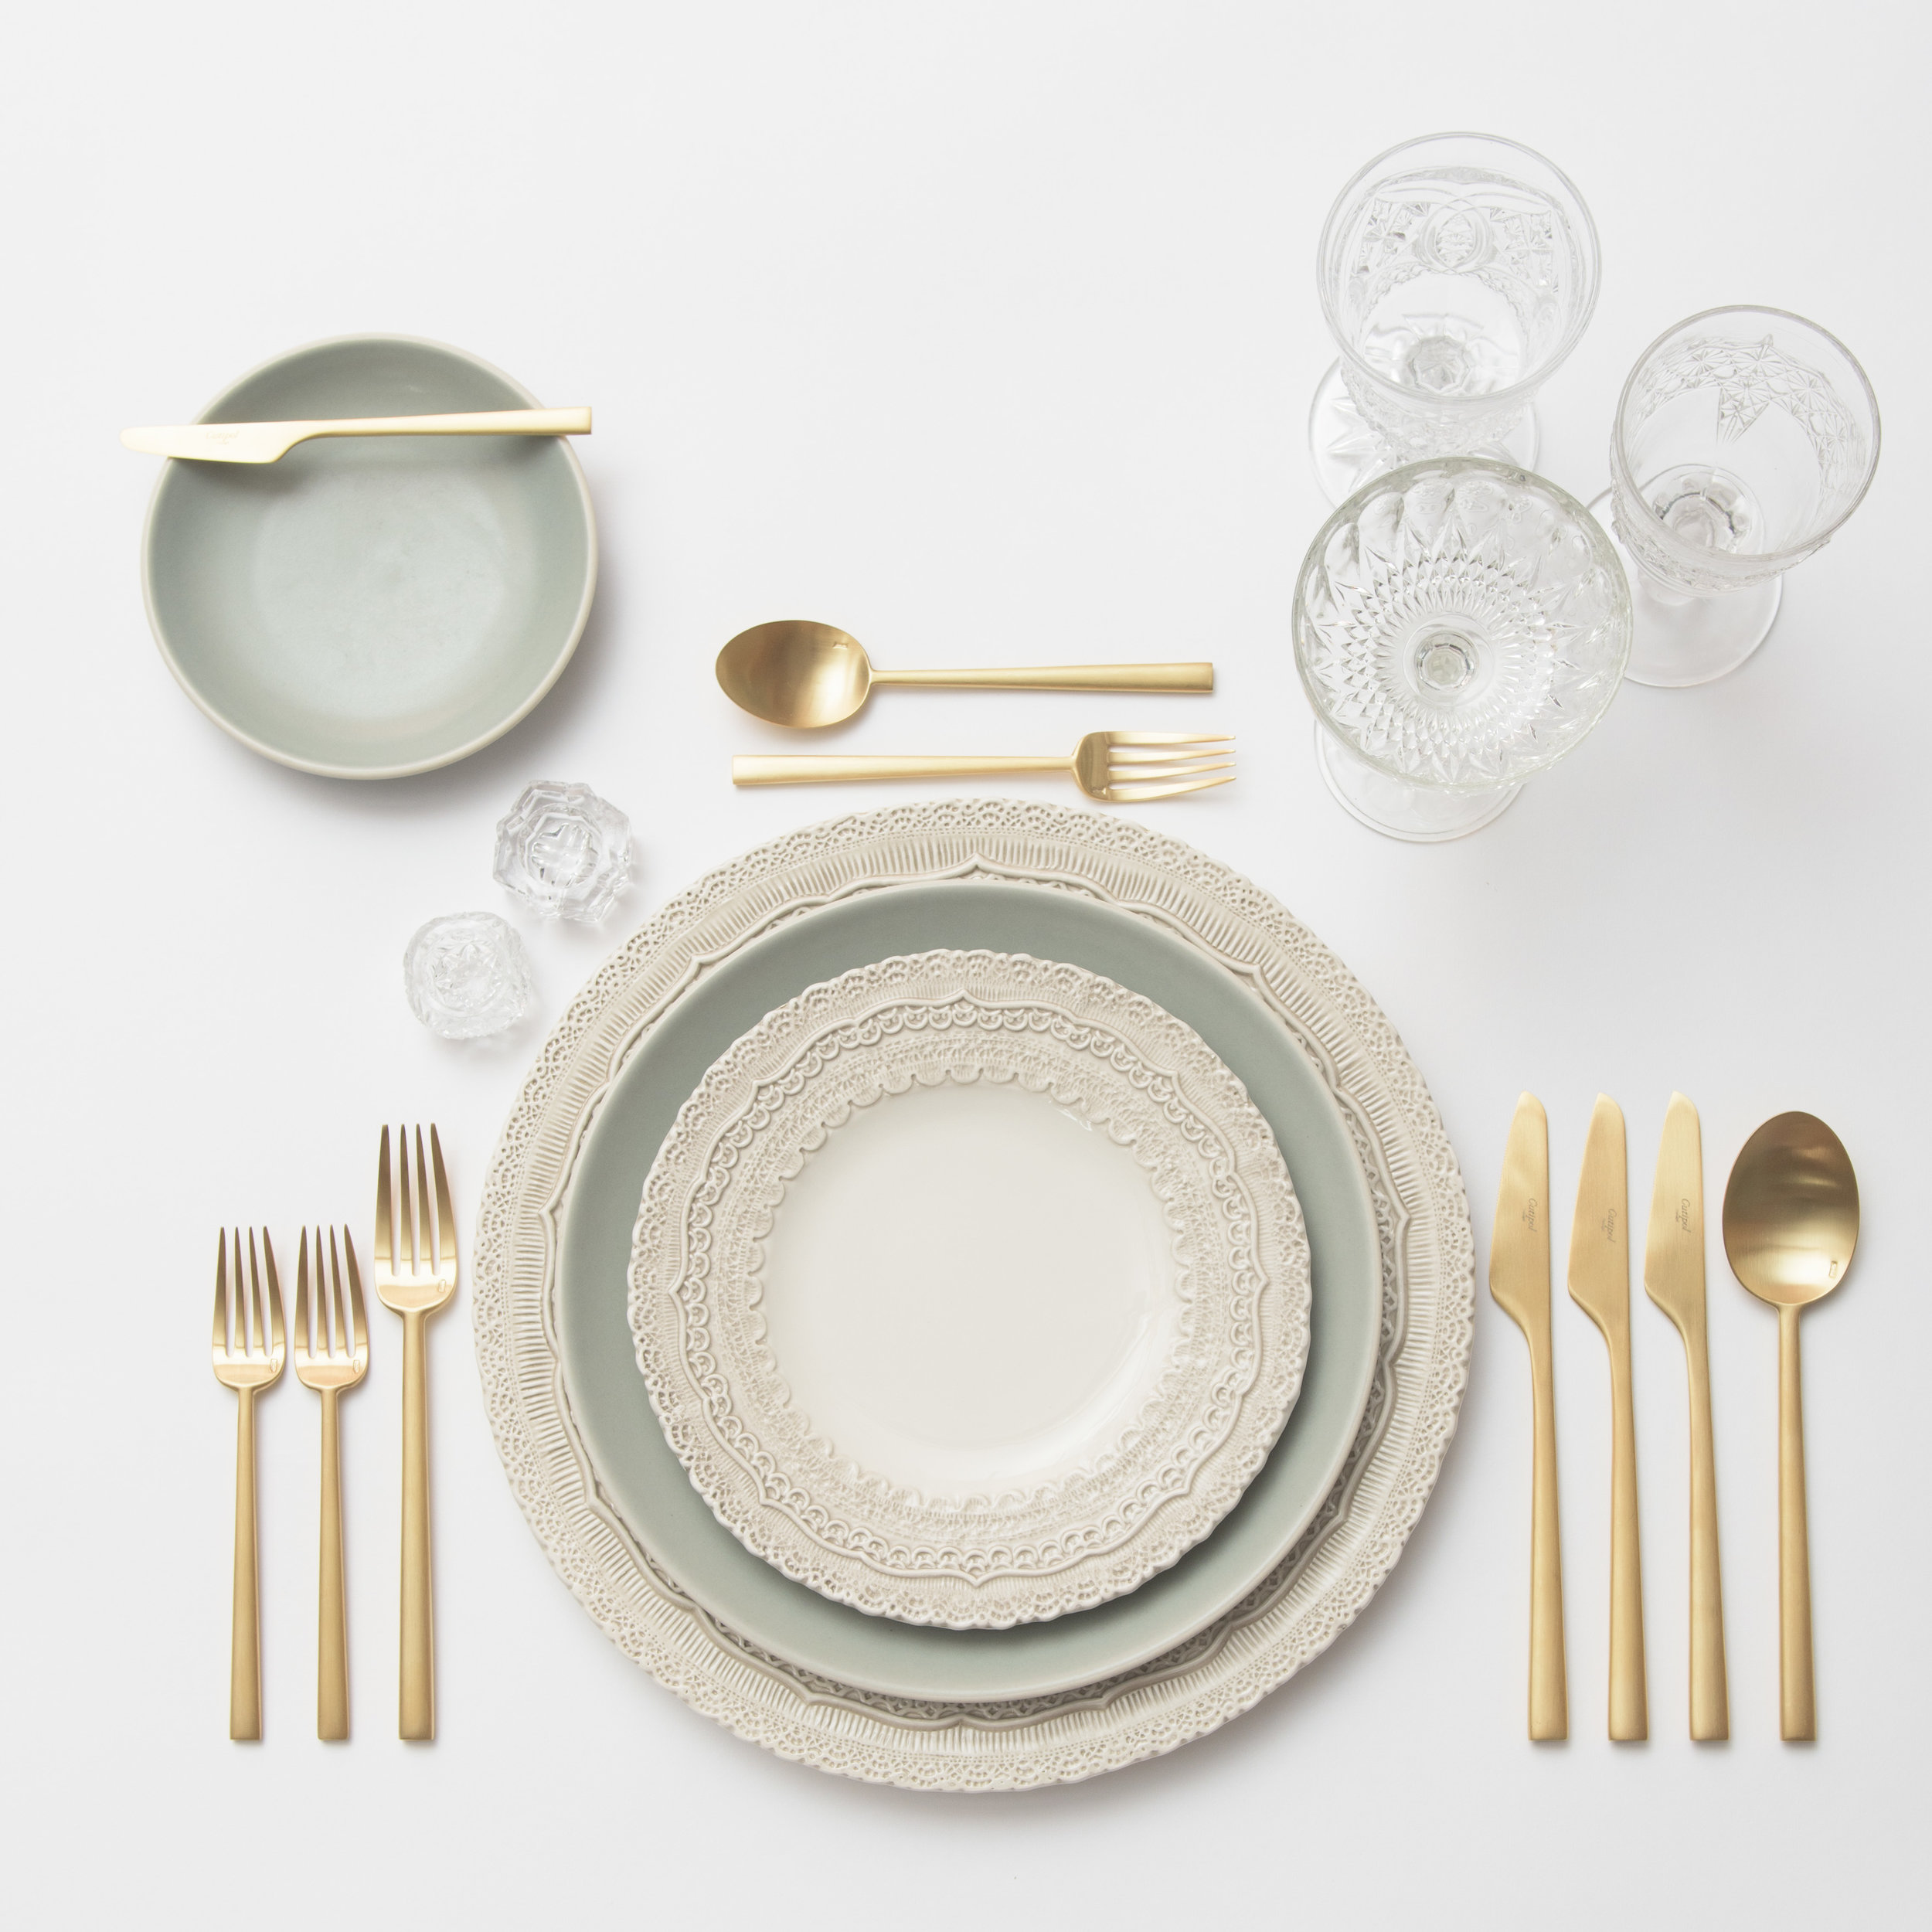 RENT: Lace Chargers/Dinnerware in White + Heath Ceramics in Mist + Rondo Flatware in Brushed 24k Gold + Early American Pressed Glass Goblets + Antique Crystal Salt Cellars  SHOP:Rondo Flatware in Brushed 24k Gold